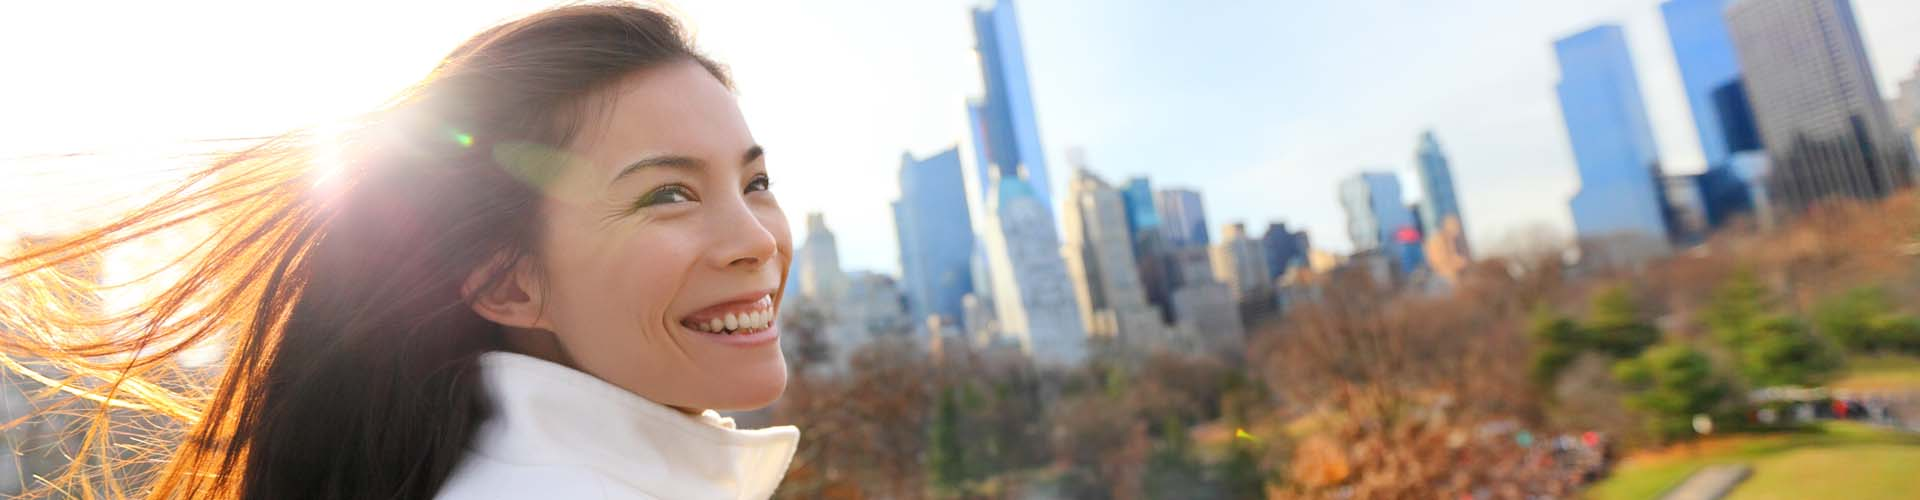 Woman smiling with city behind her